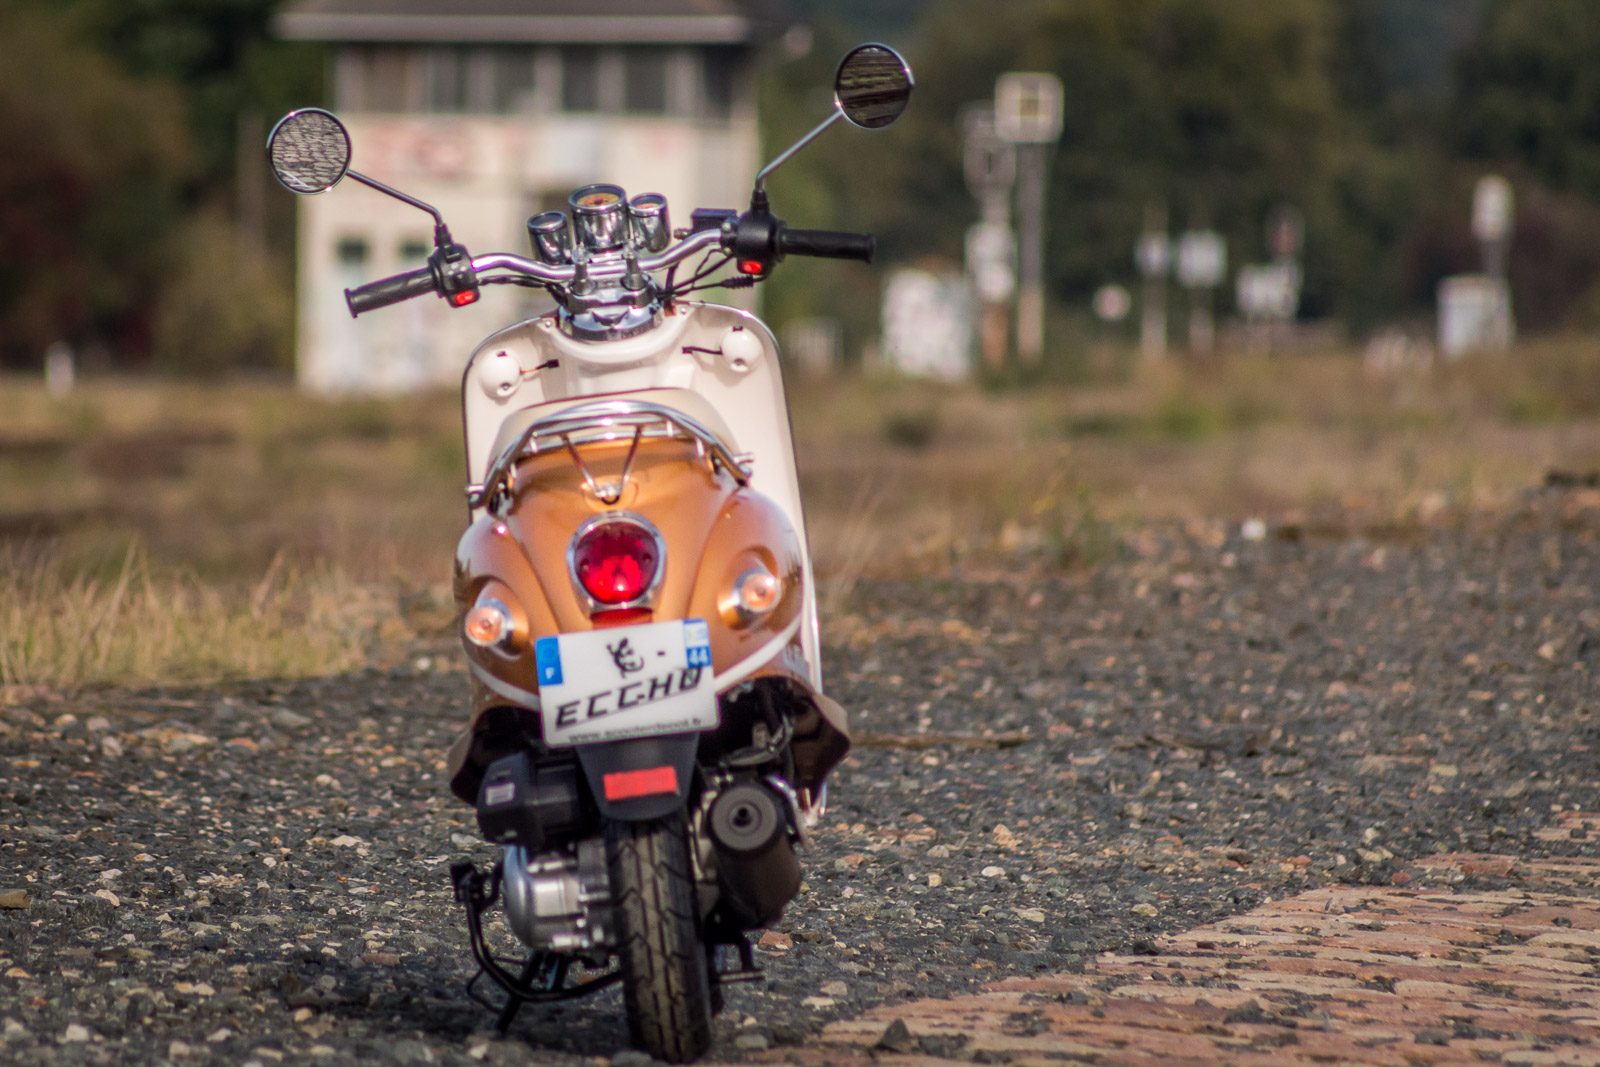 SCOOTER-50-ECCHO-RETRO-GOLDER-06